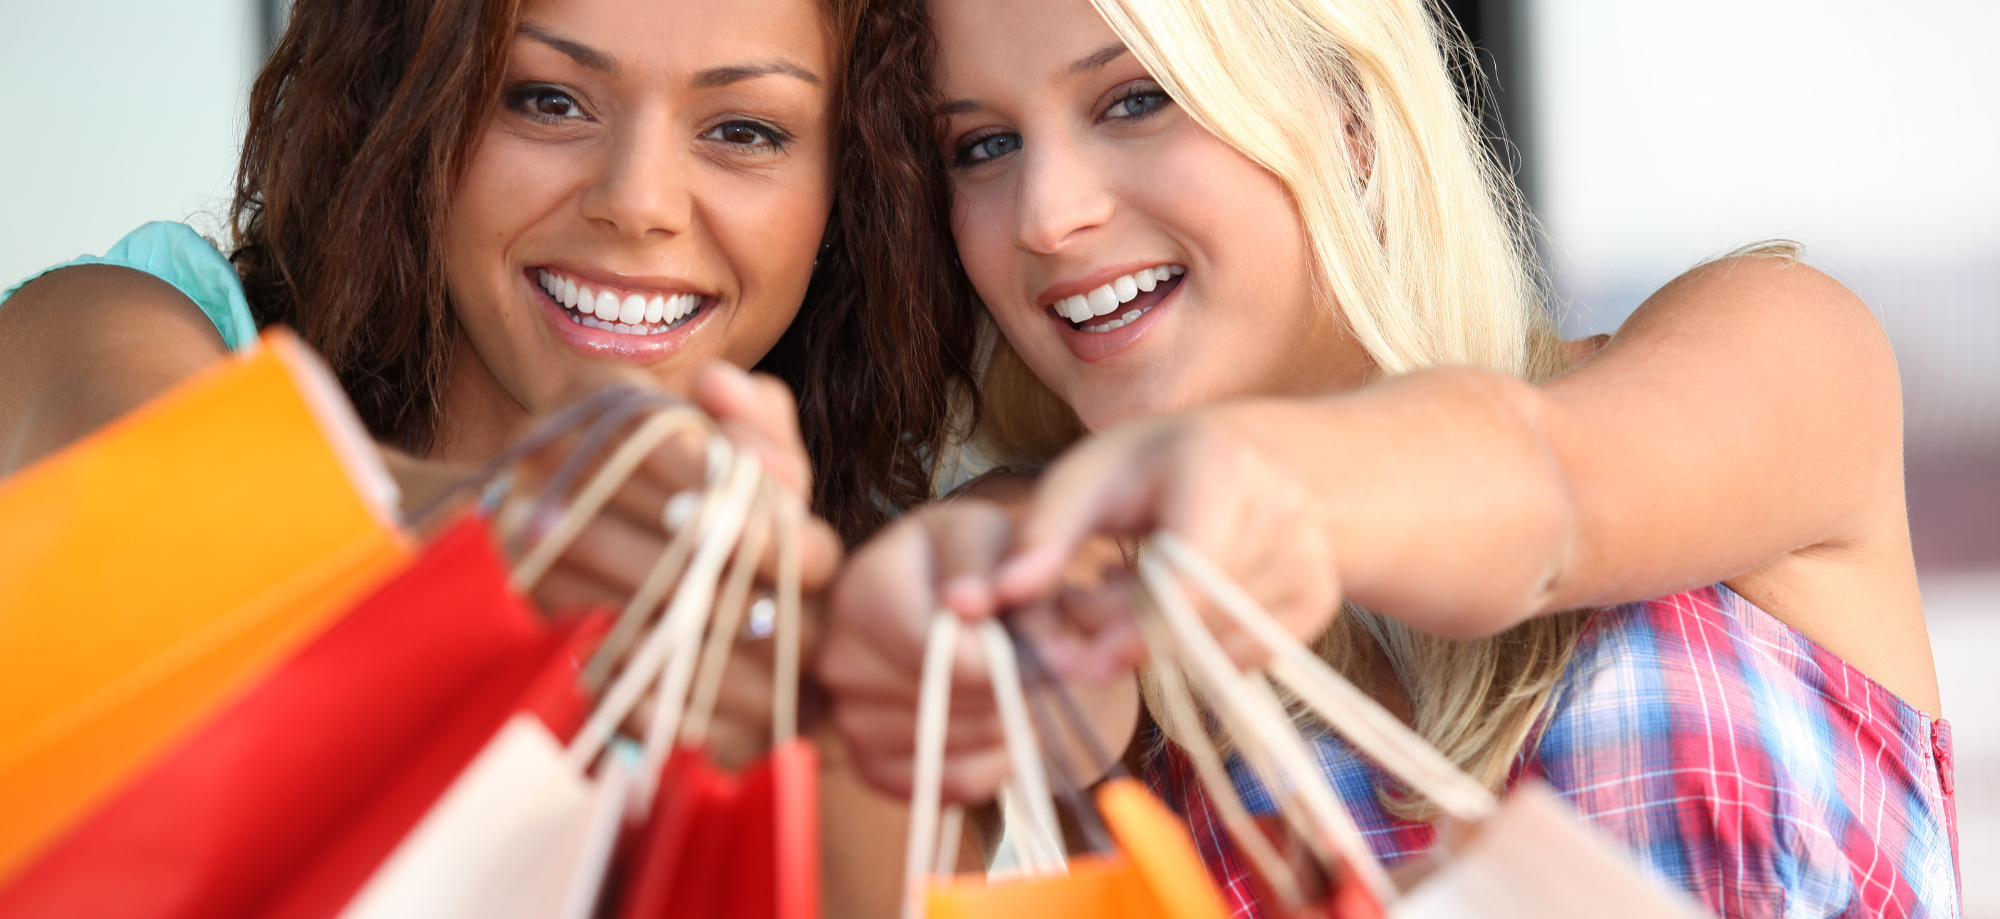 two girls on a shopping spree